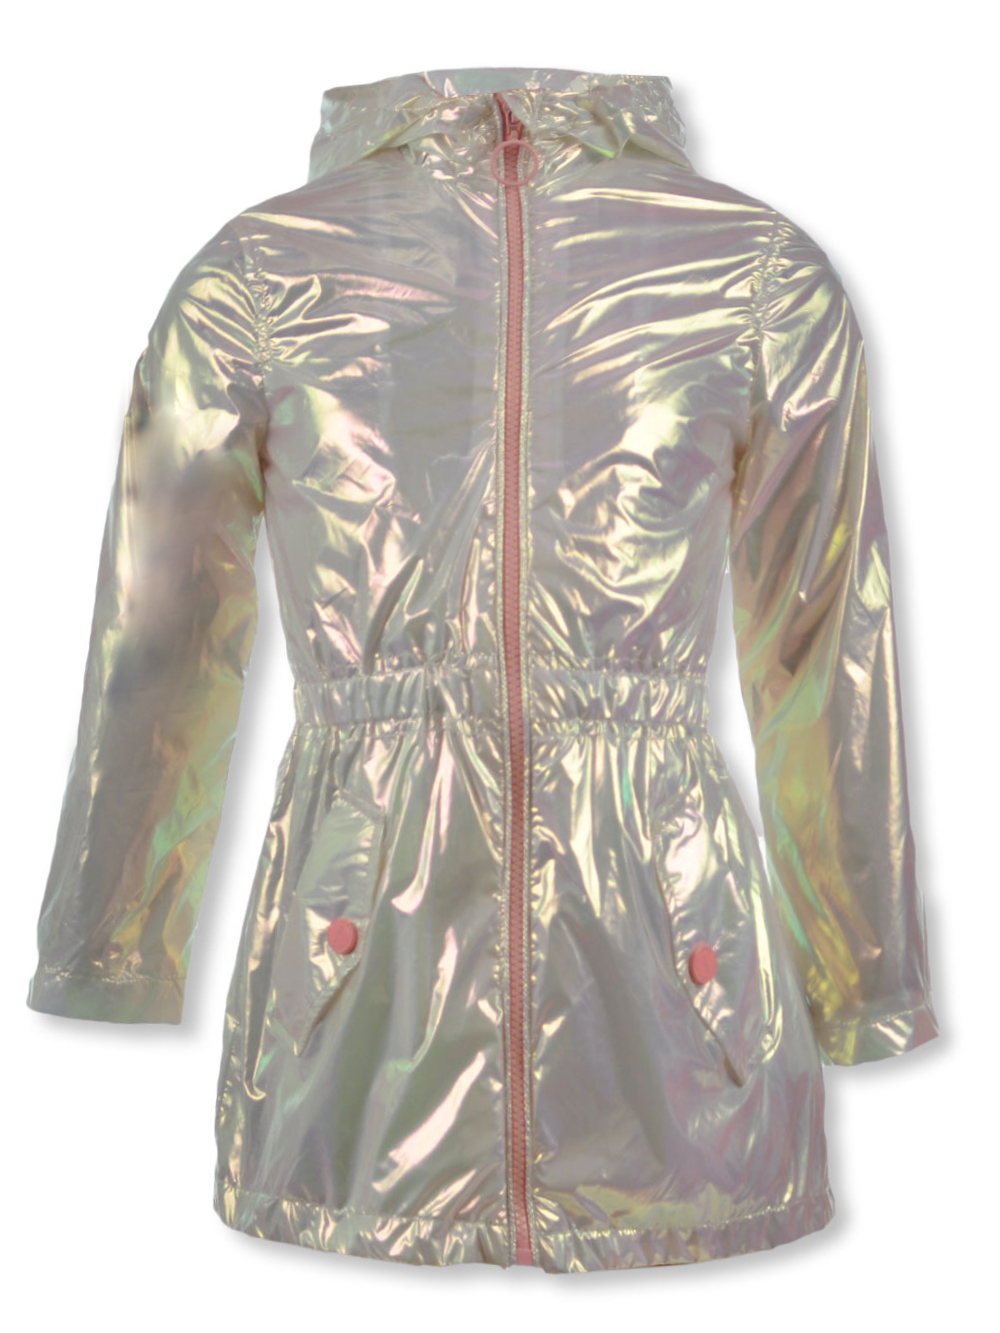 Iridescent Jackets